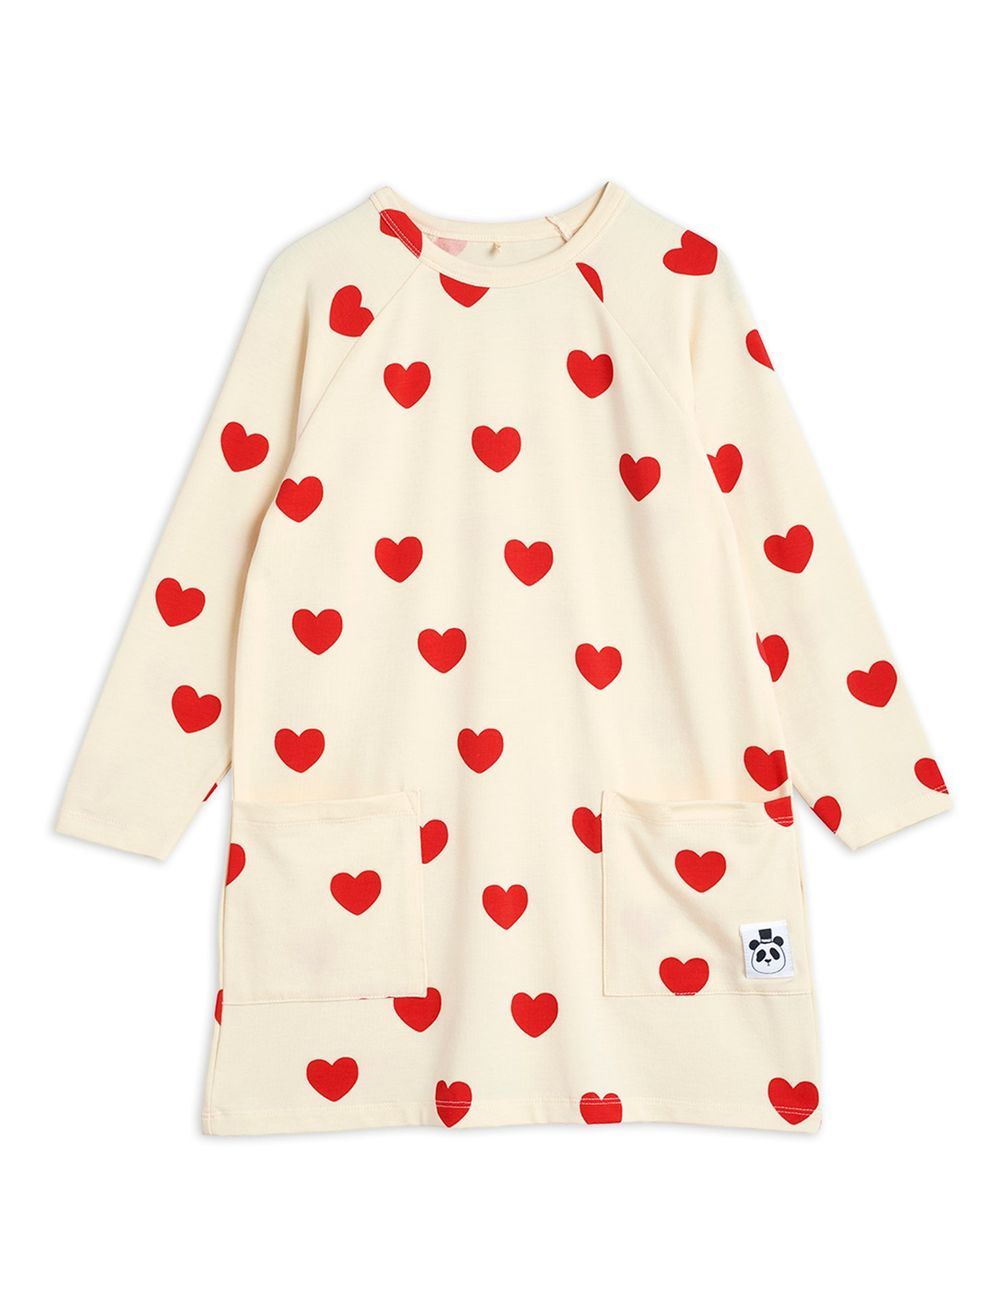 MINI RODINI HEARTS LS DRESS, OFFWHITE